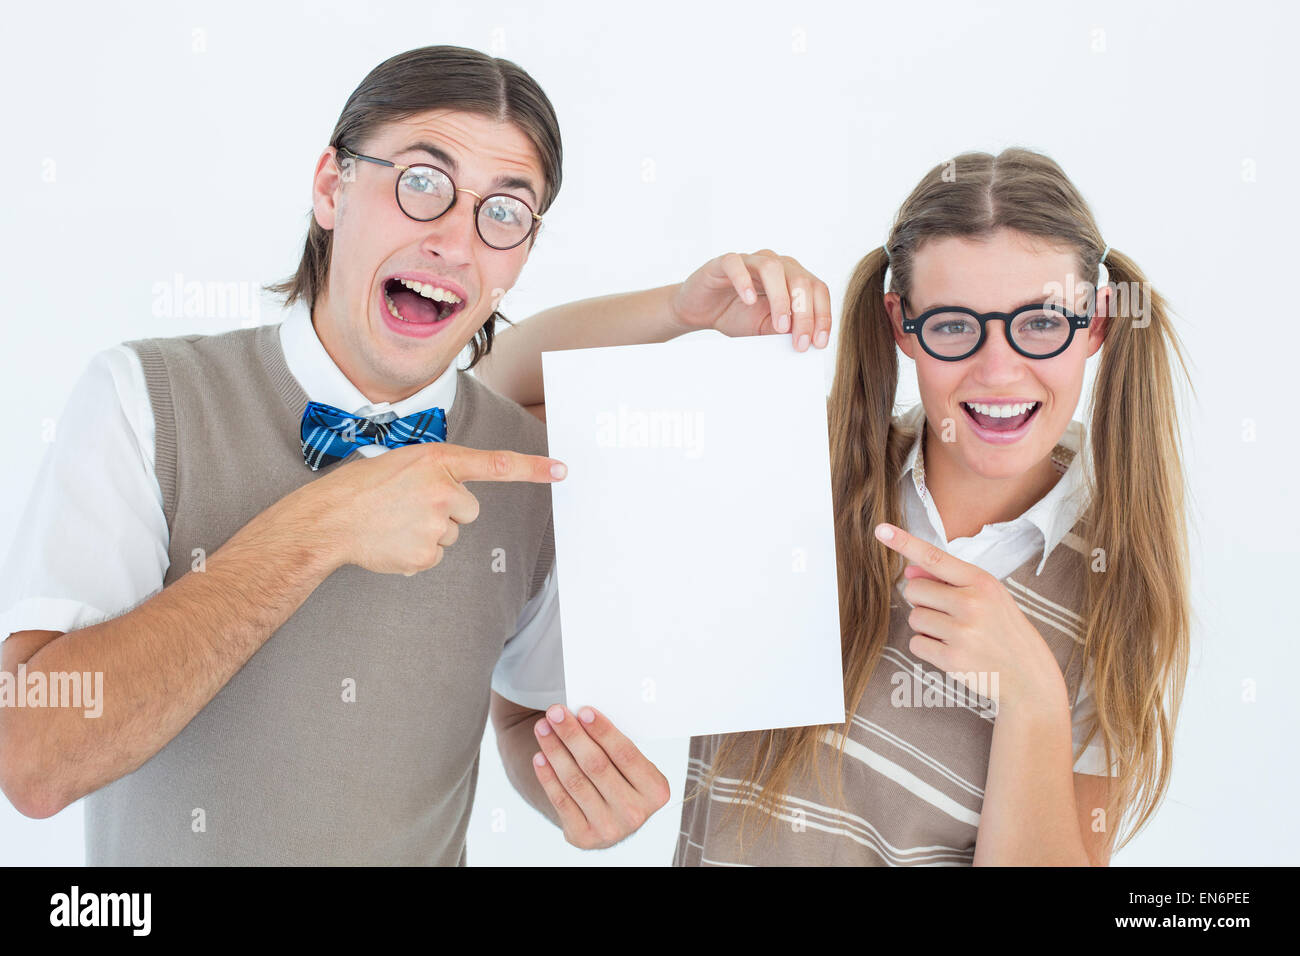 Geeky hipsters pointing at poster - Stock Image